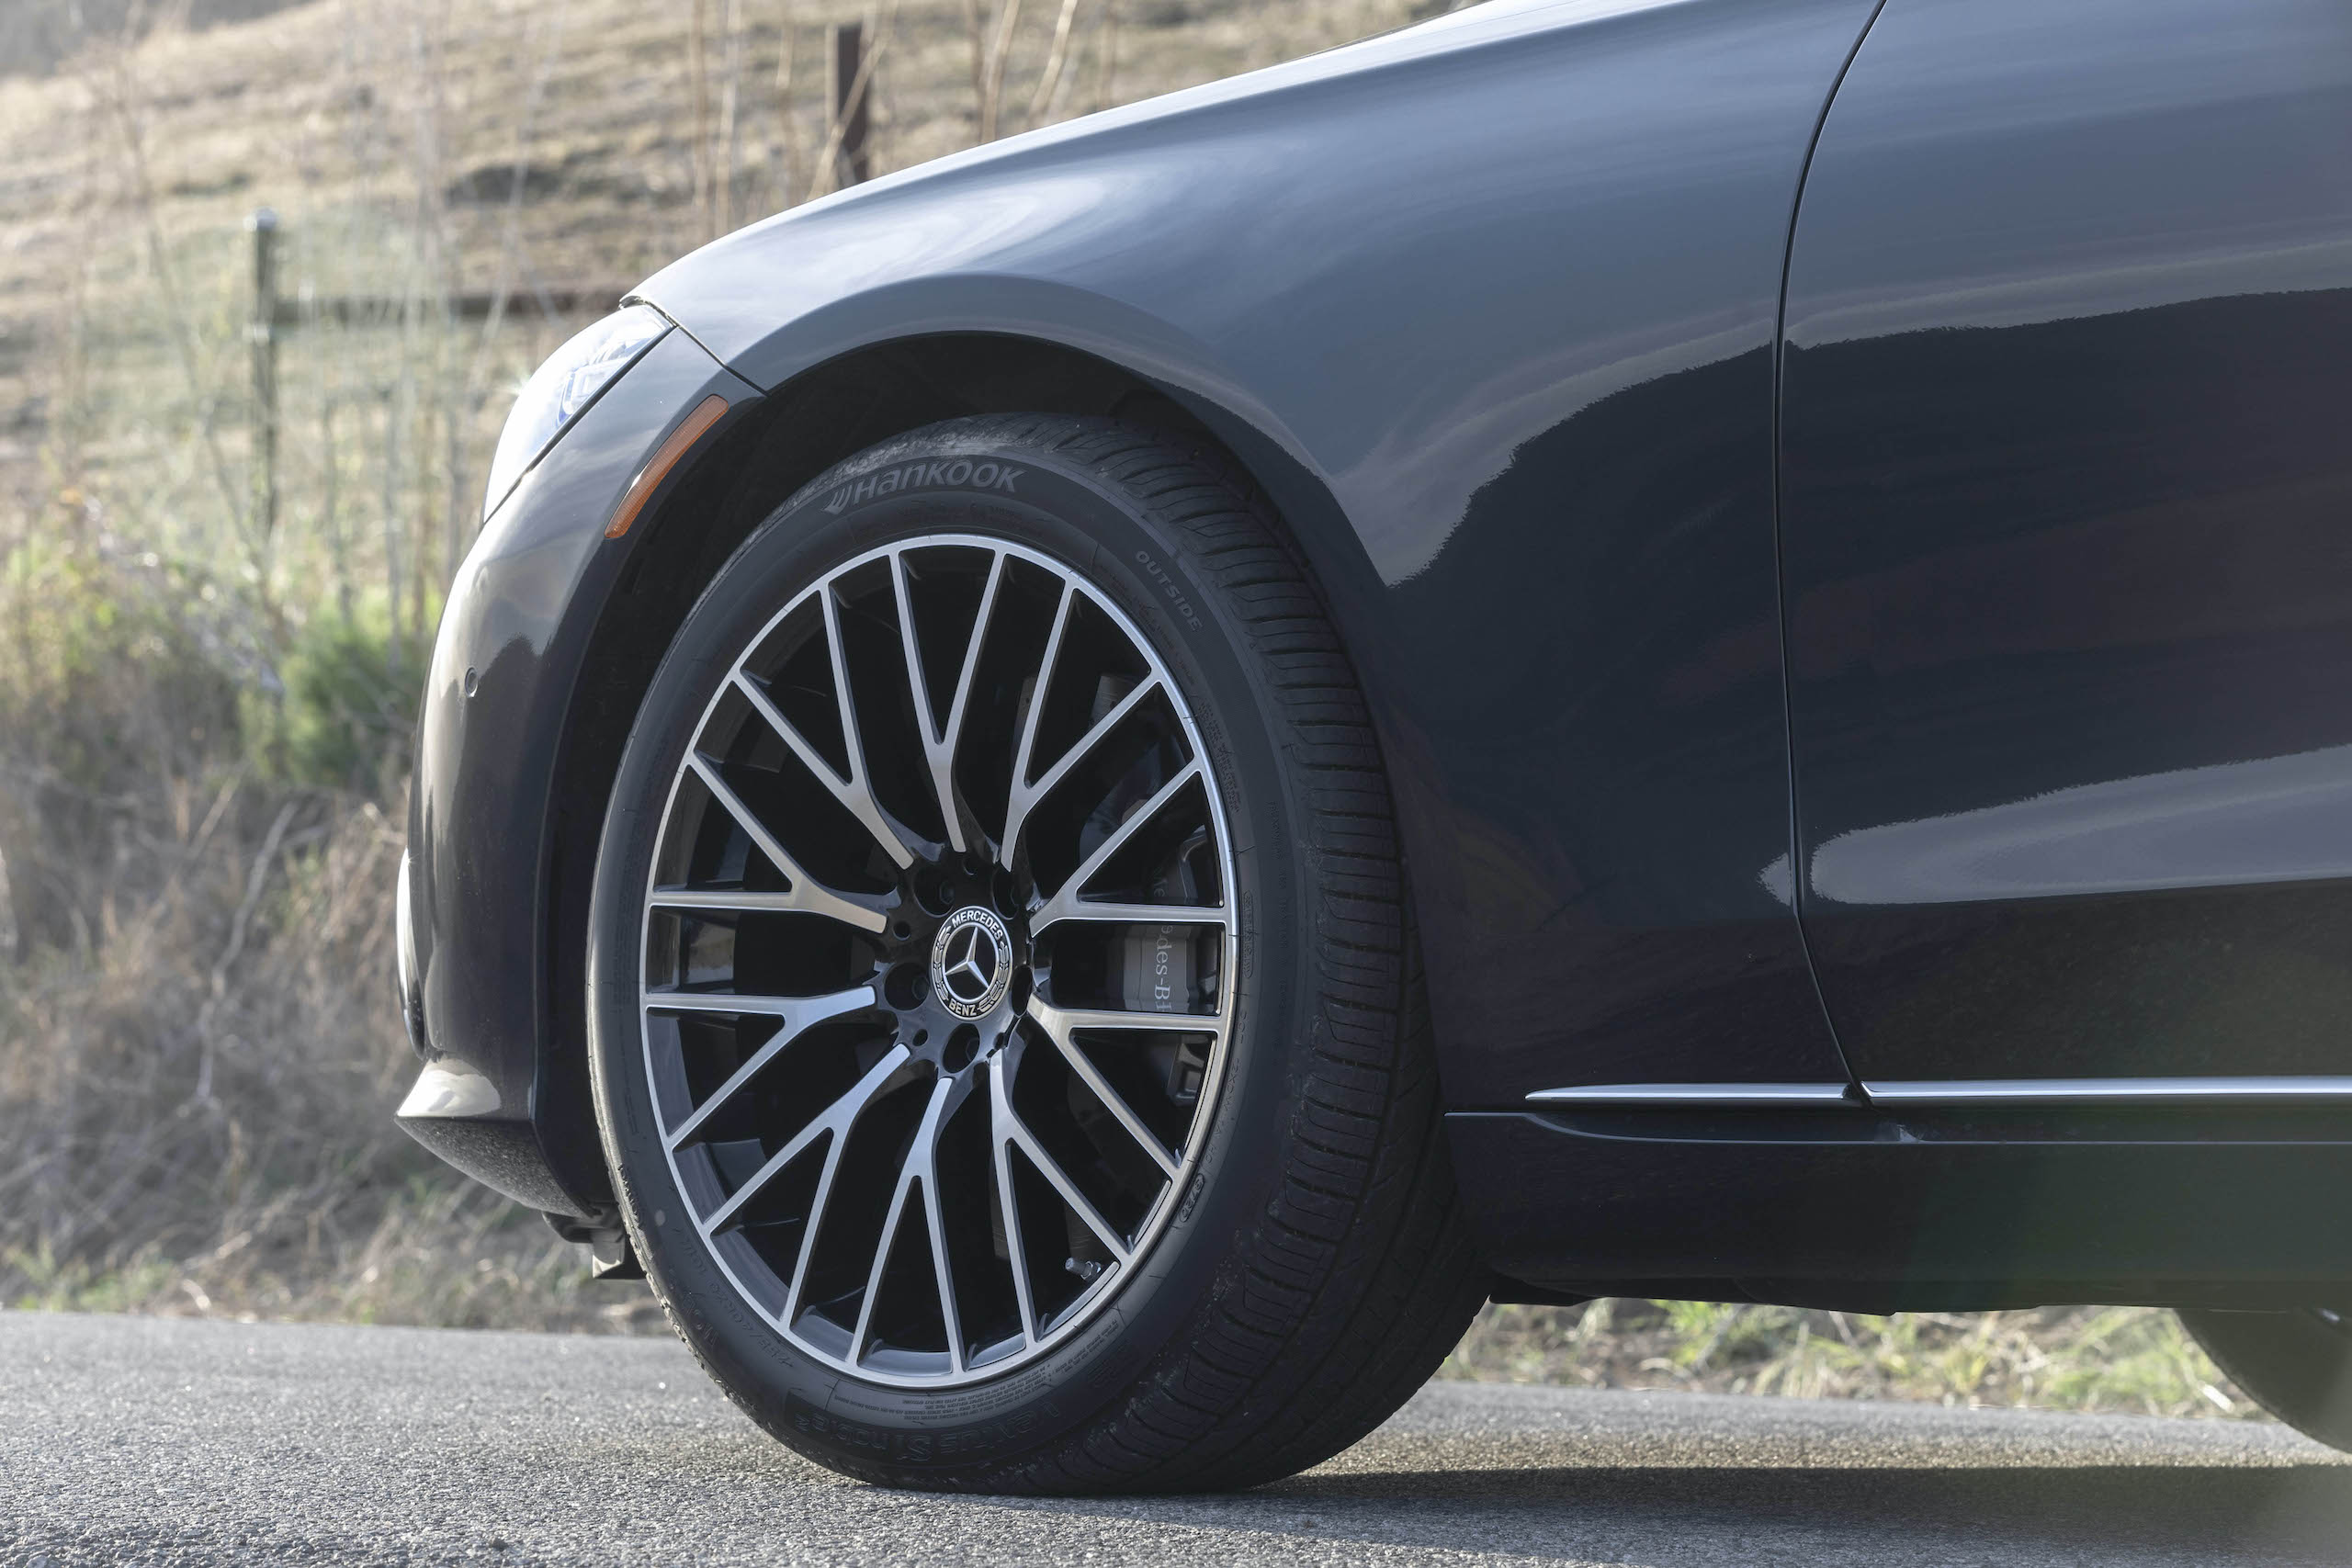 Mercedes Benz-S-Class front wheel and tire